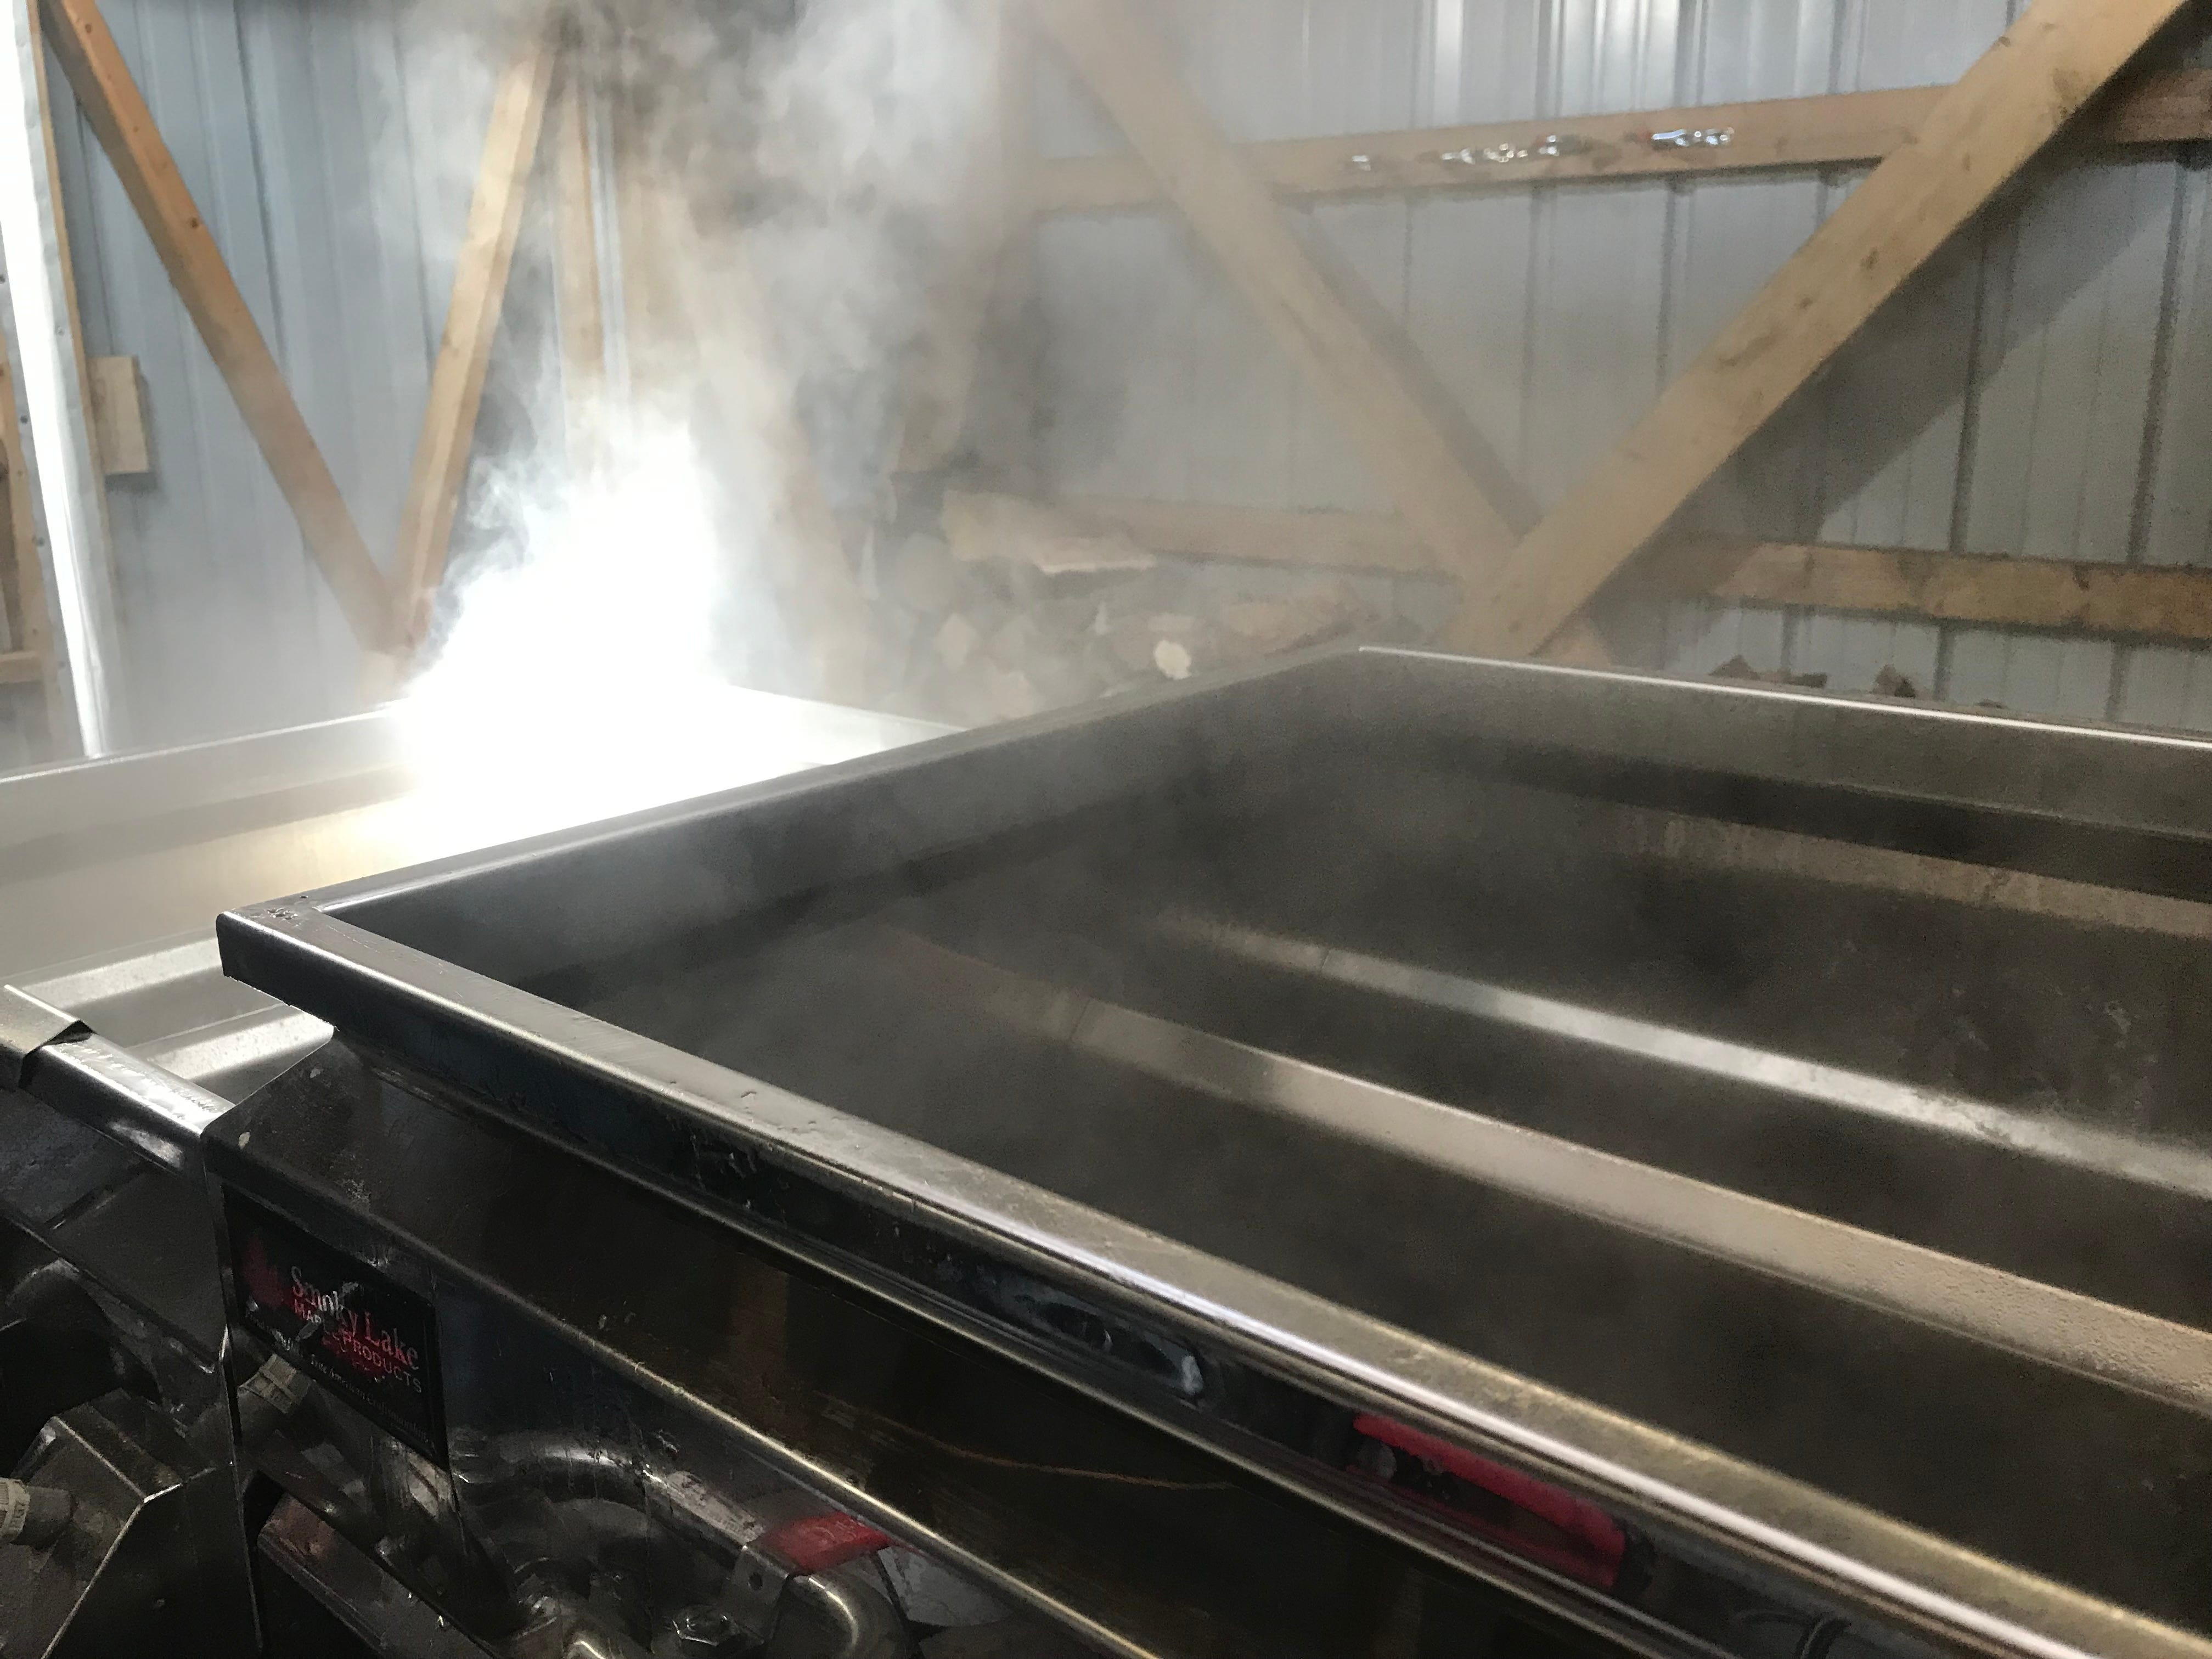 Maple producers boil sap to reduce water content and leave behind natural sugars.